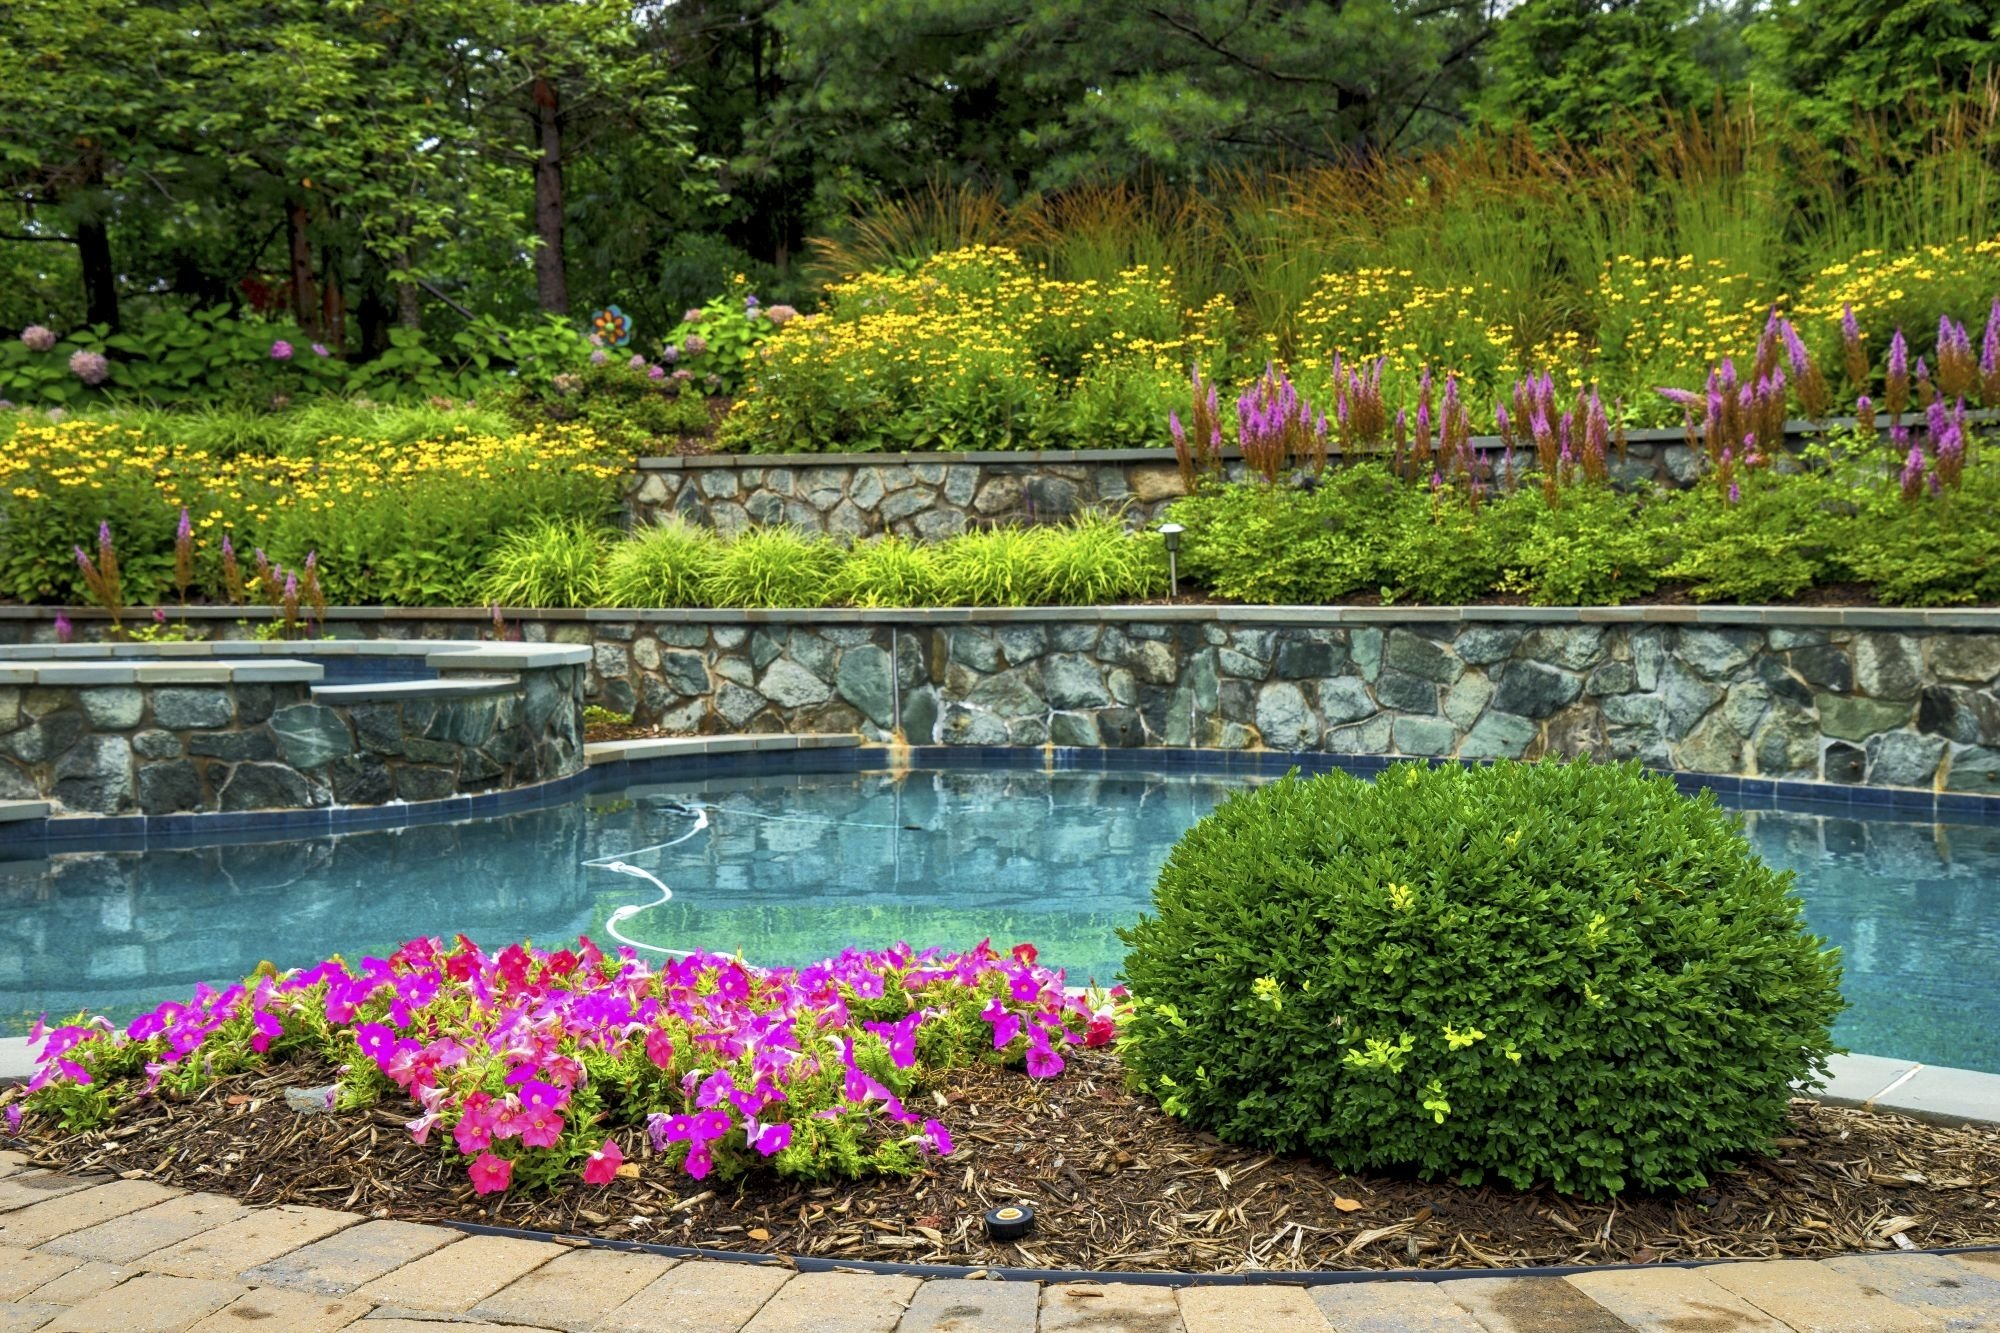 Pool landscape with blooming plants